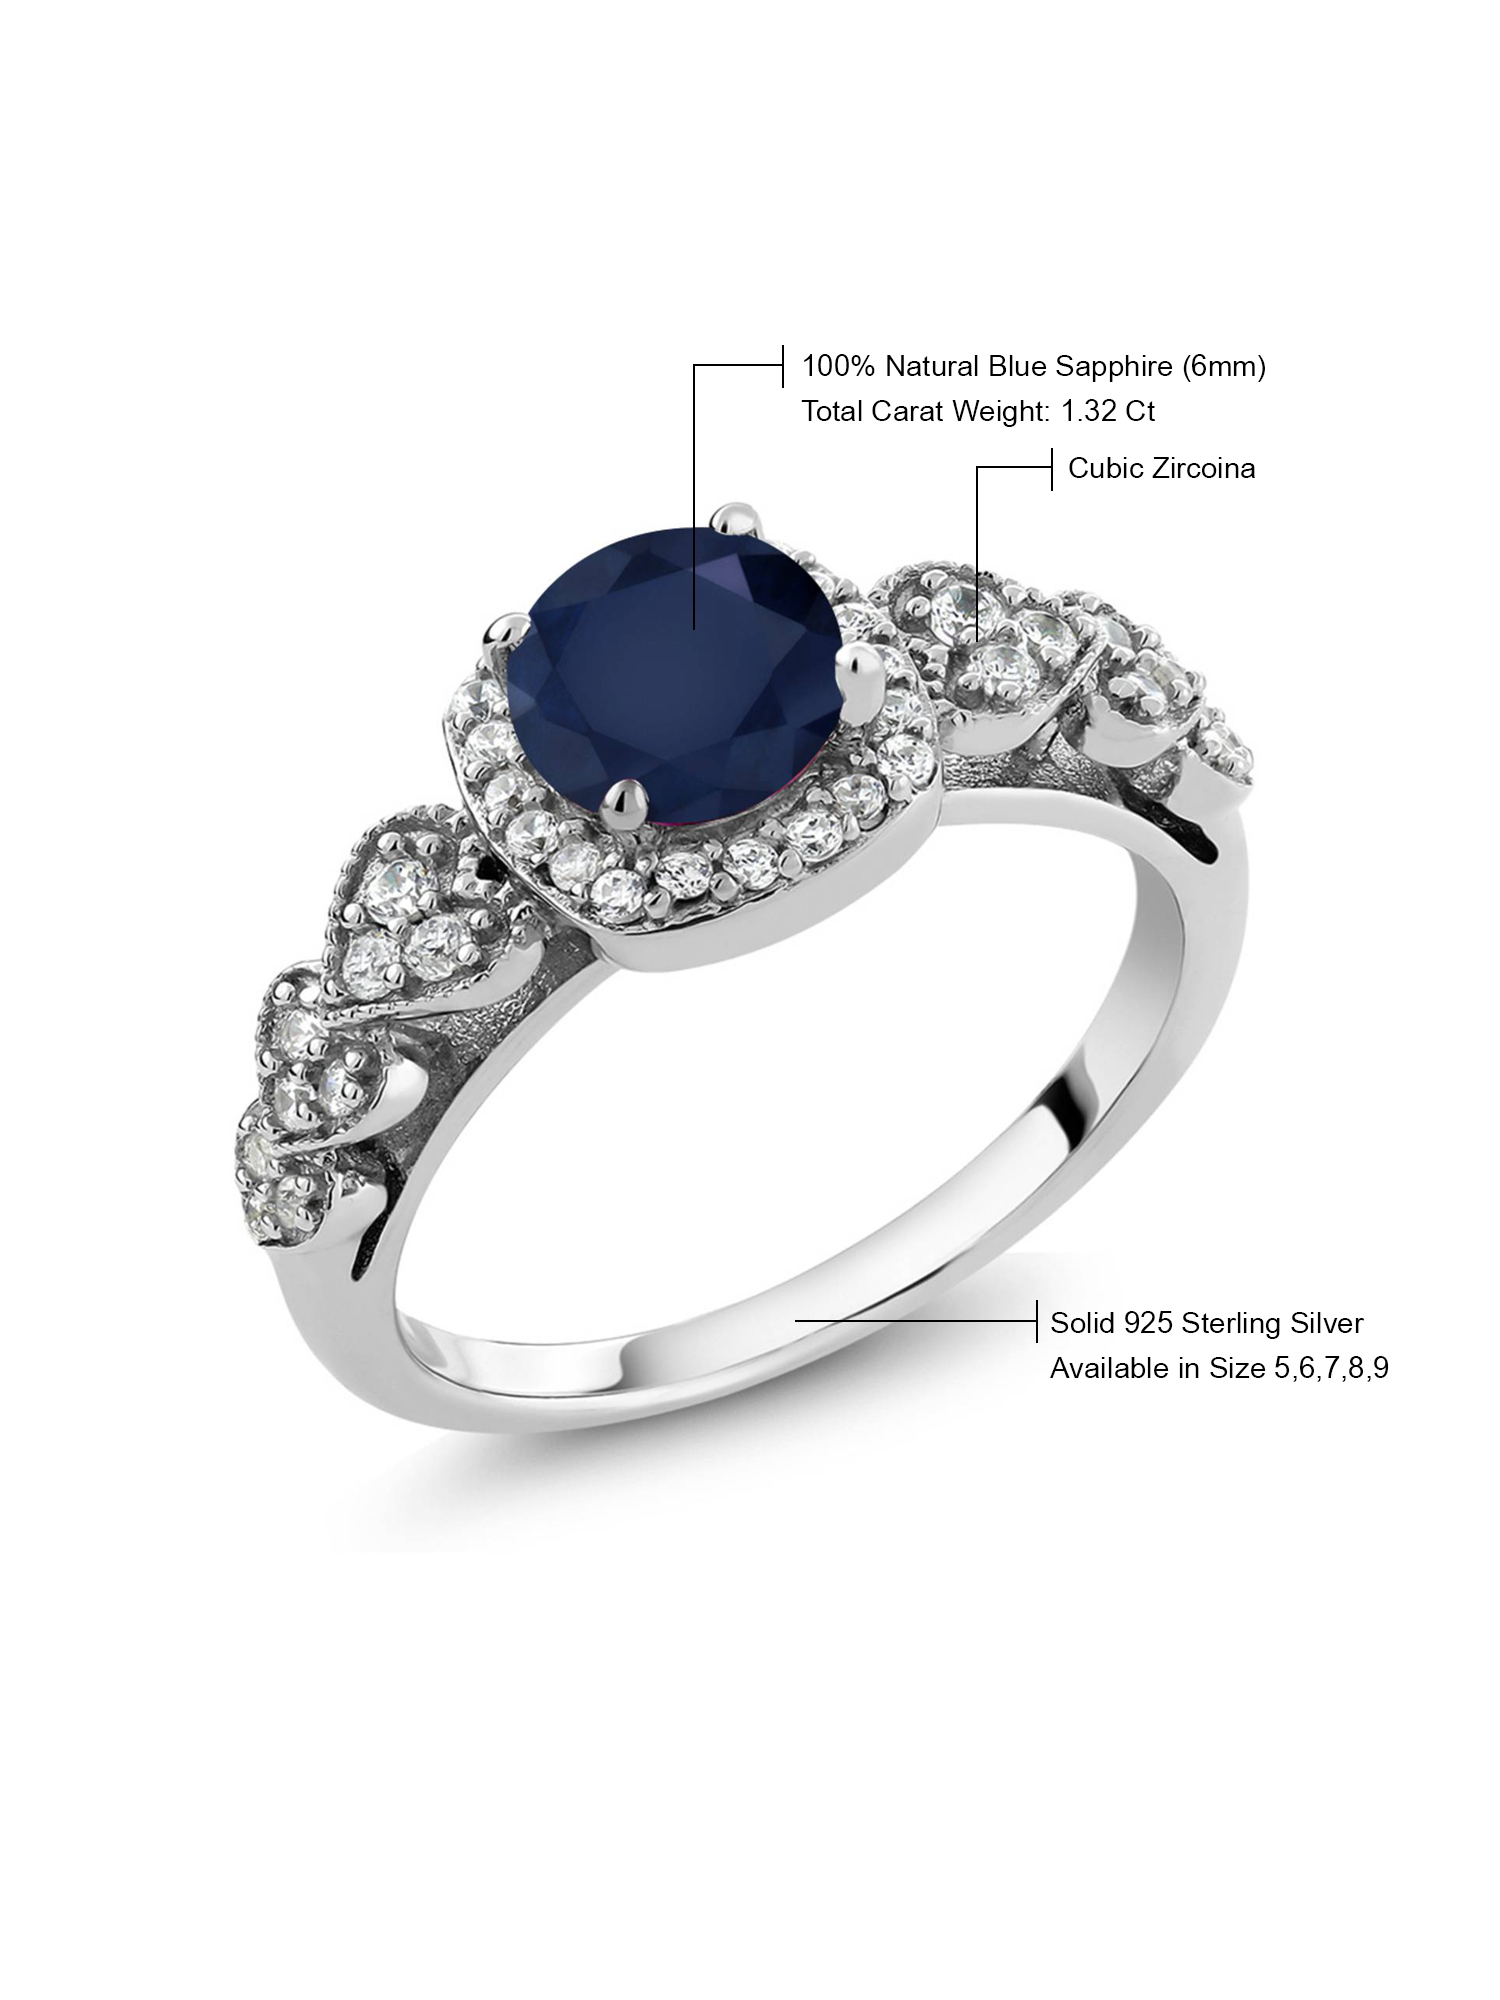 925 Hallmark Sterling Silver Vintage Style Black Gemstone Solitaire Ring different sizes available